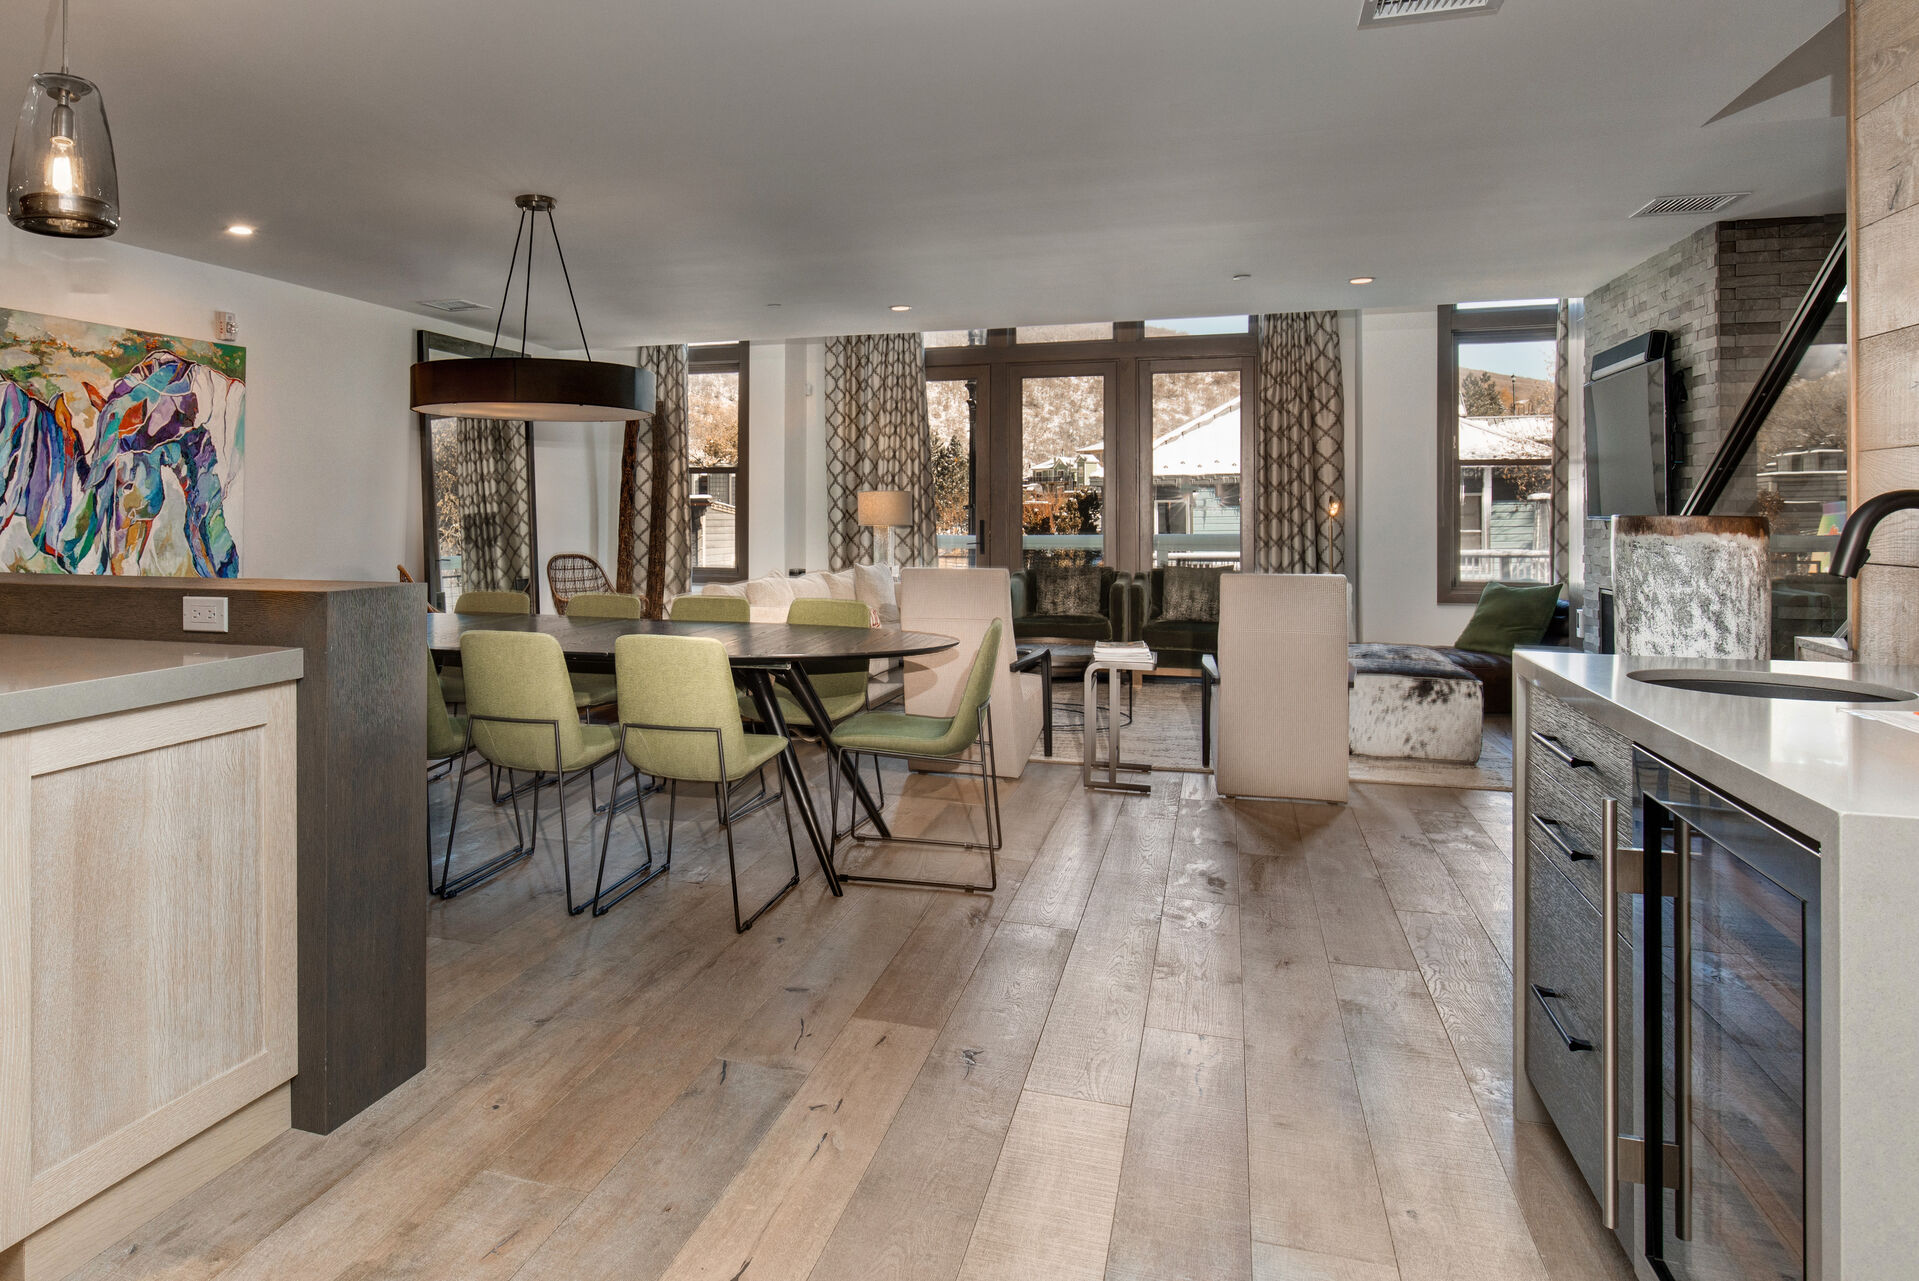 Bar Seating for 3 and a Wet Bar with Two-Zone Wine Fridge